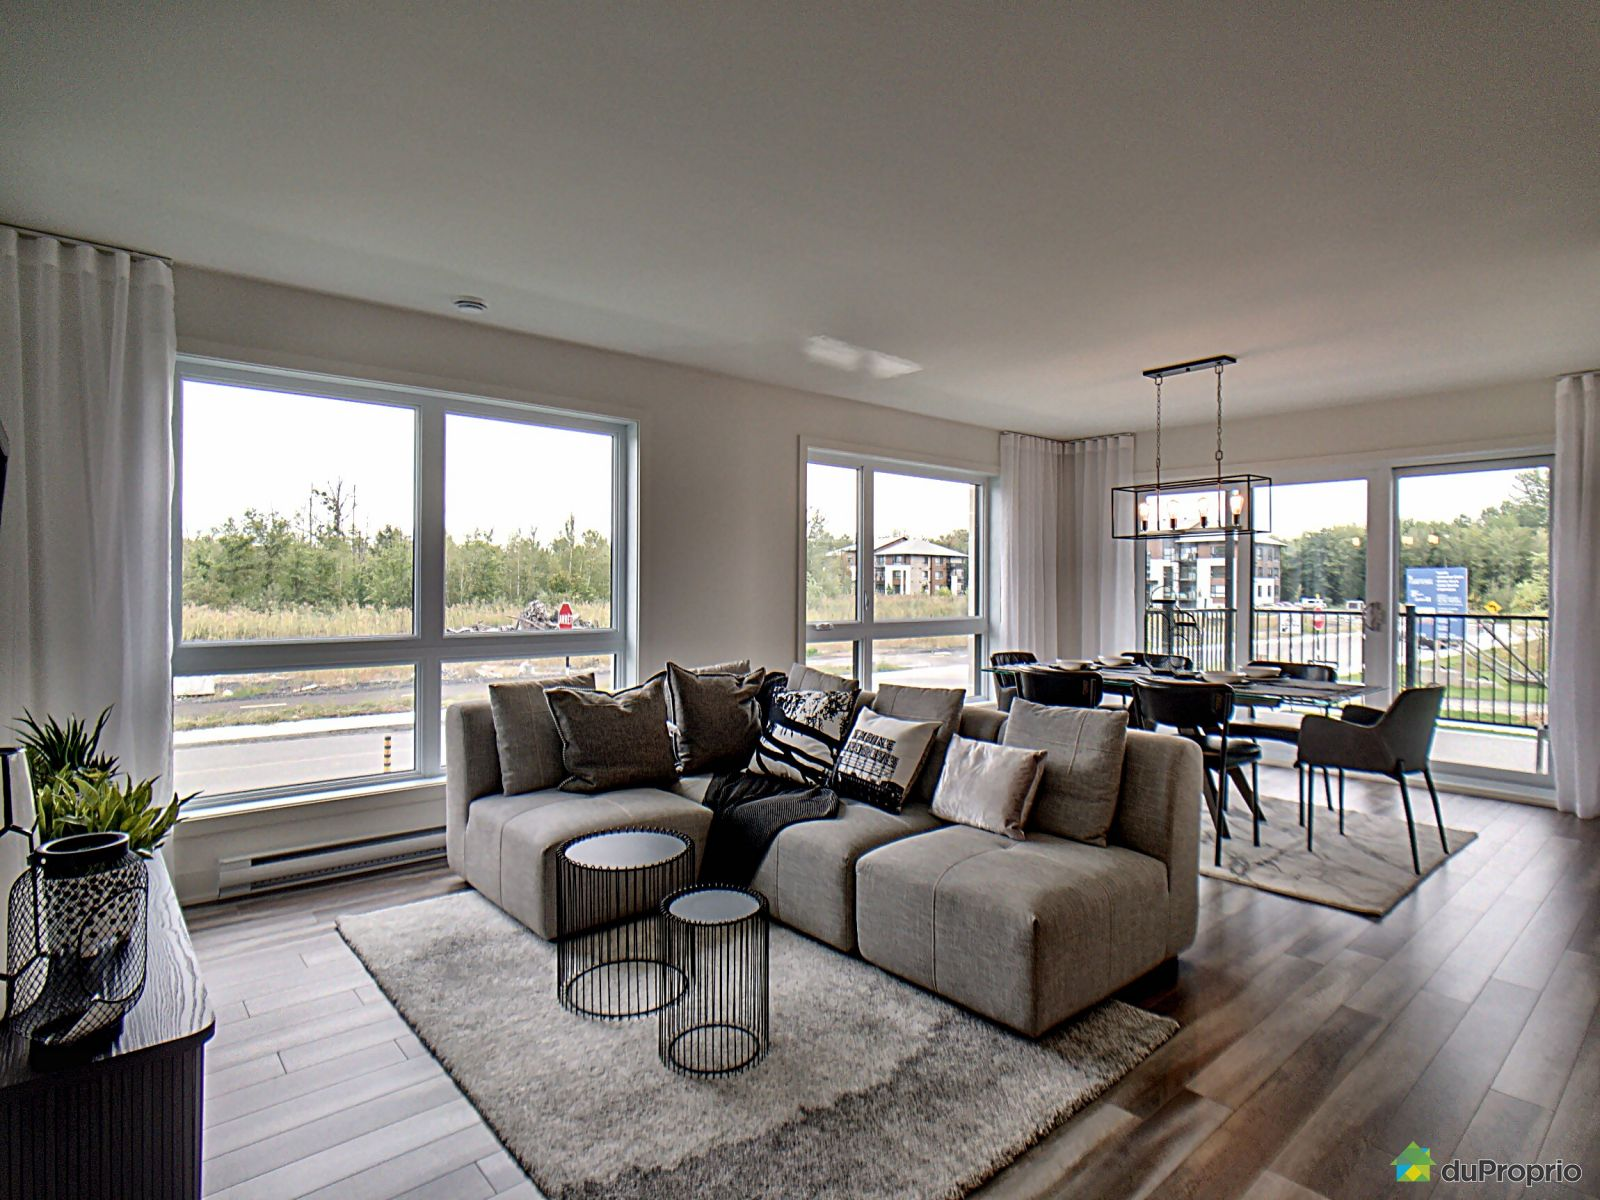 Open Concept - 4005 rue Emma-Colin, Longueuil (St-Hubert) for sale